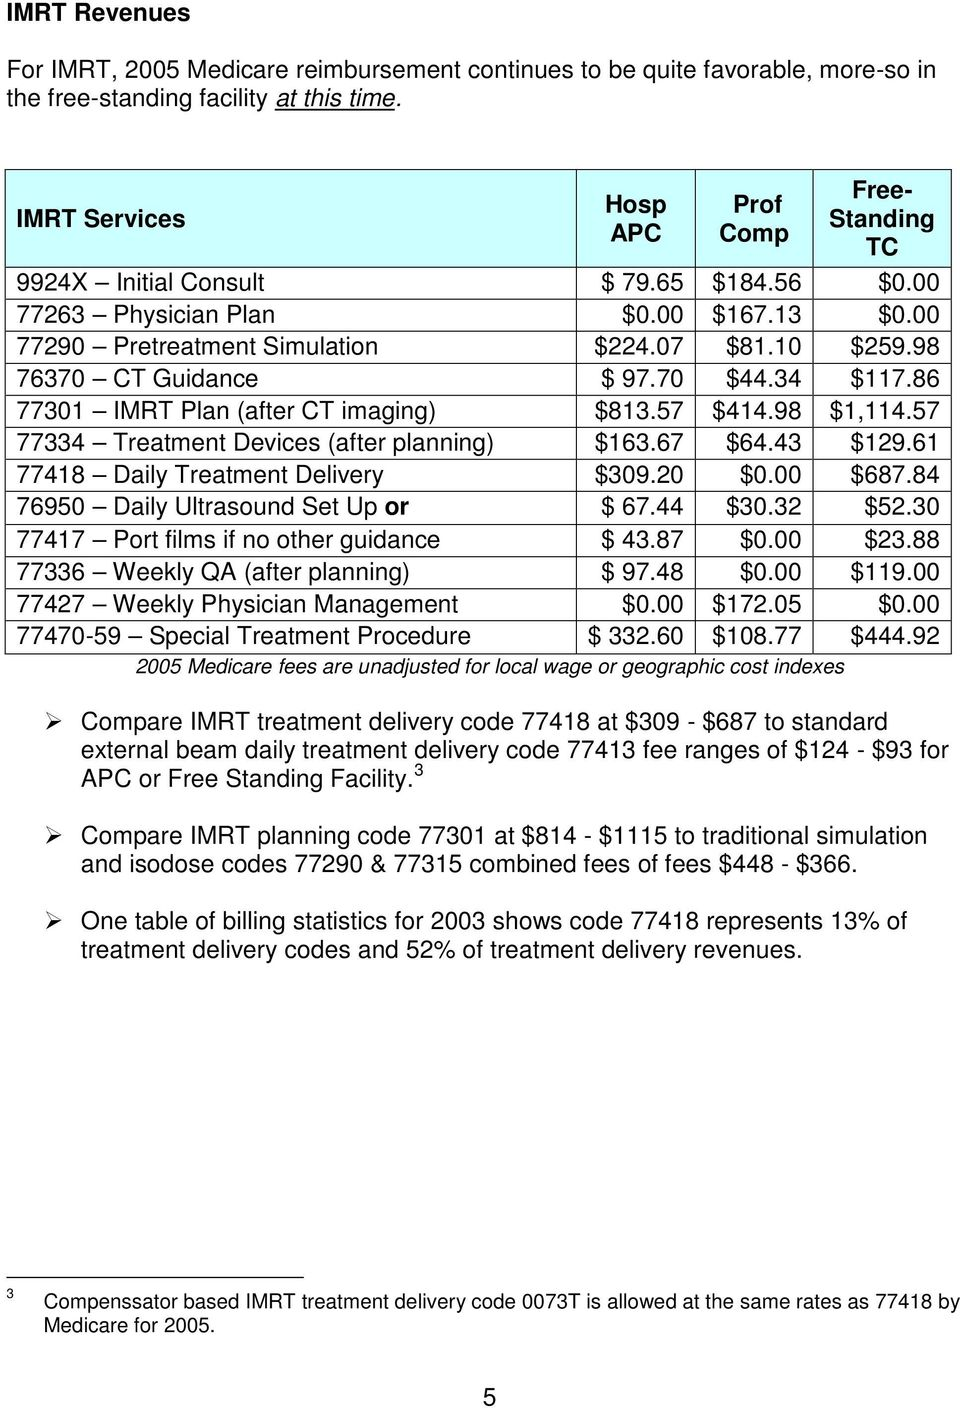 98 76370 CT Guidance $ 97.70 $44.34 $117.86 77301 IMRT Plan (after CT imaging) $813.57 $414.98 $1,114.57 77334 Treatment Devices (after planning) $163.67 $64.43 $129.